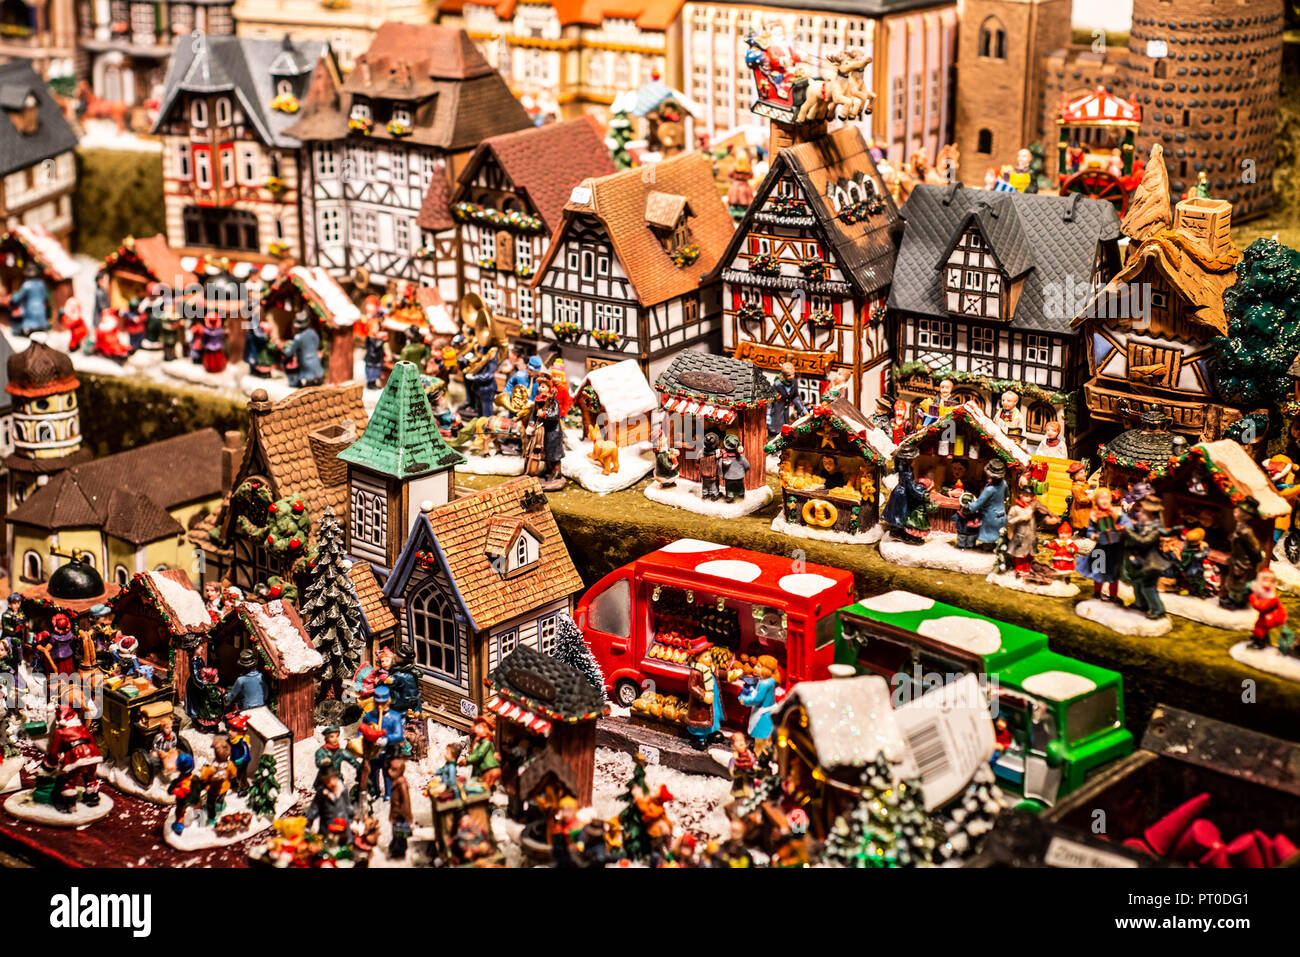 Traditional souvenirs and toys like smal model houses at european